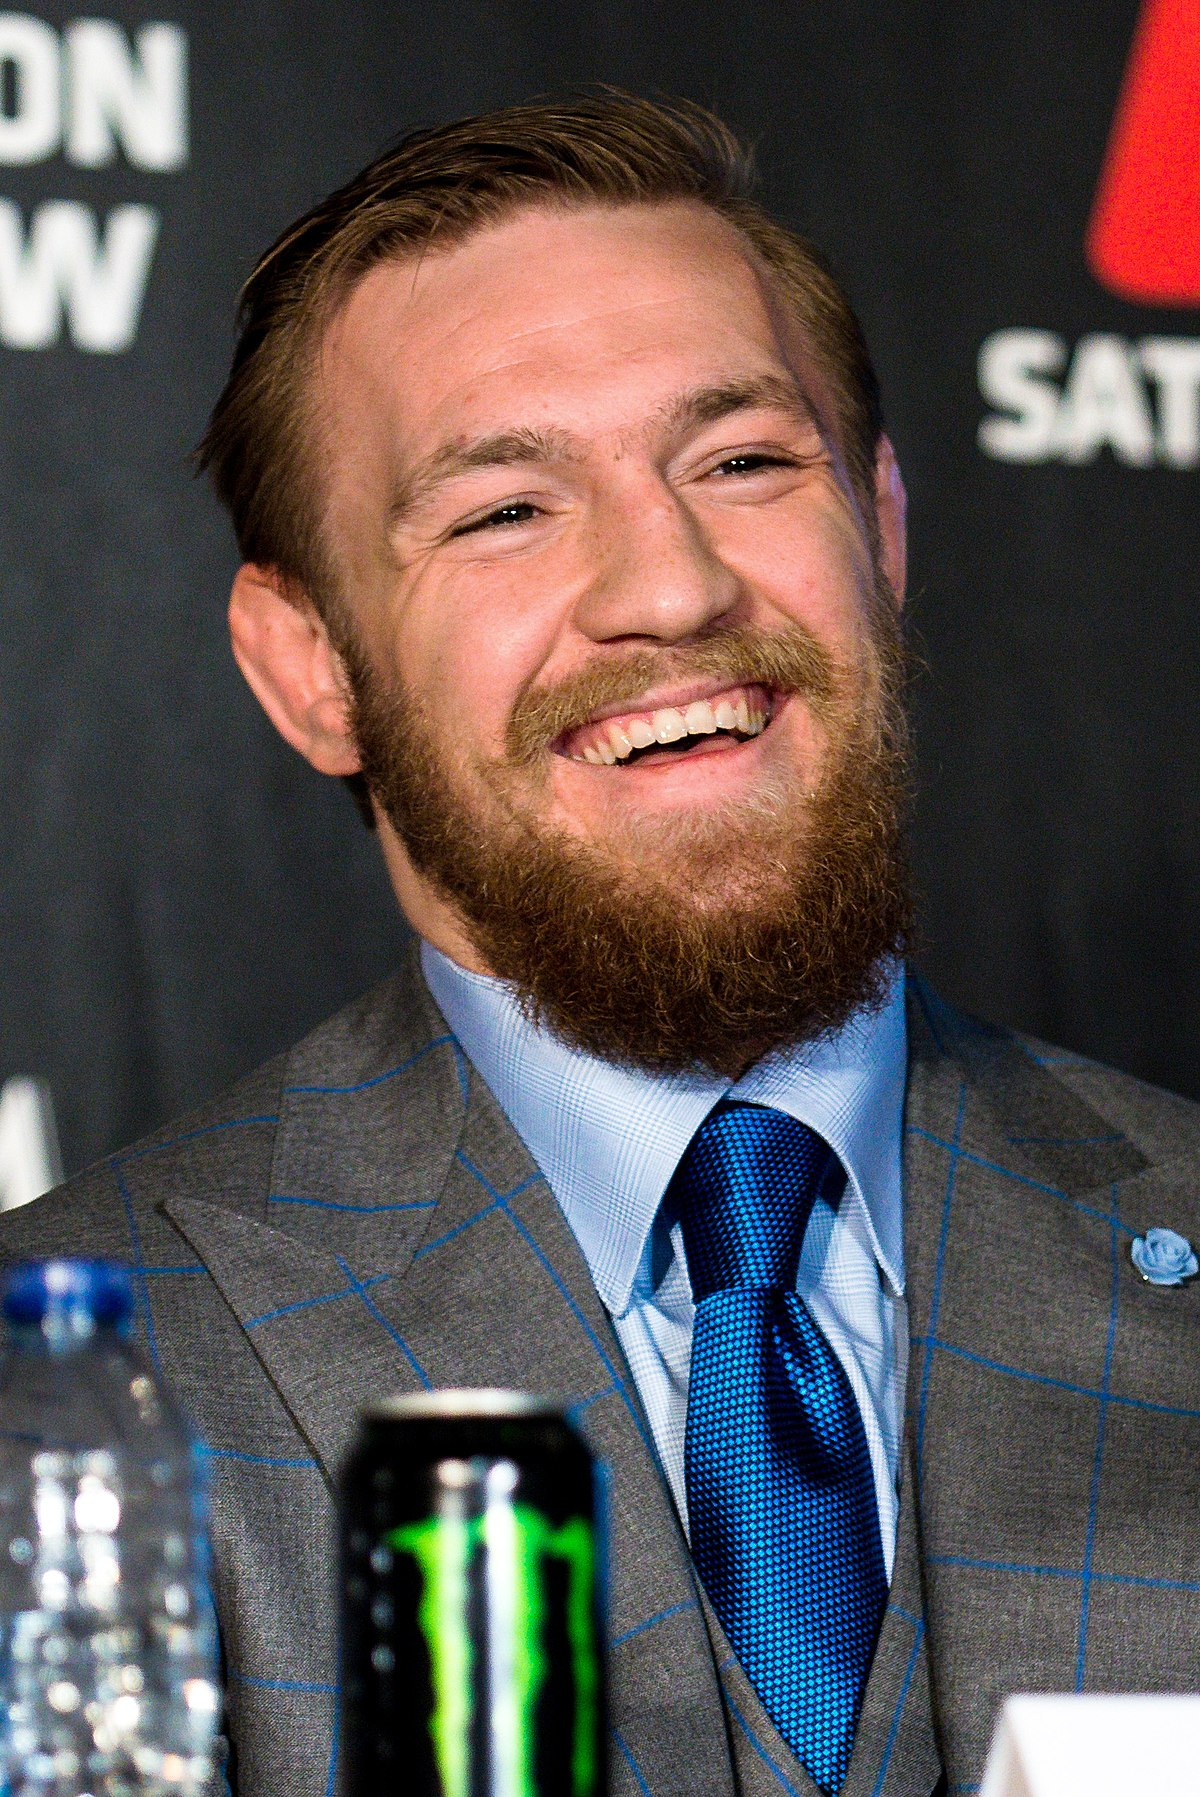 conor mcgregor - photo #7